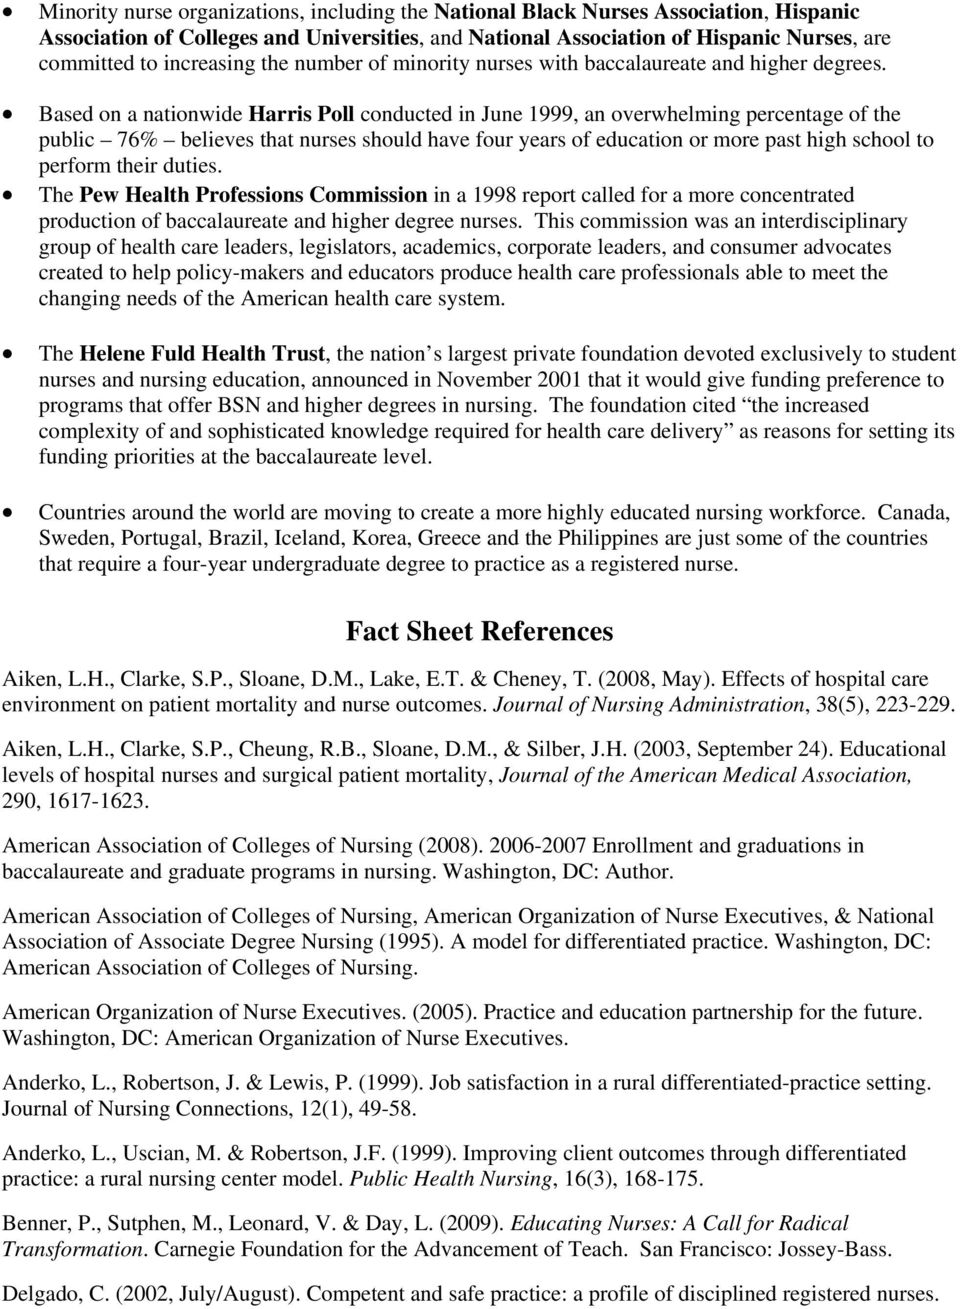 an analysis of the differentiated nursing practices in the hospital setting Copy of learning insights related to nursing practice the problems and adjustments encountered by the nursing  the learning experience of a student nurse, a critical analysis prepared.